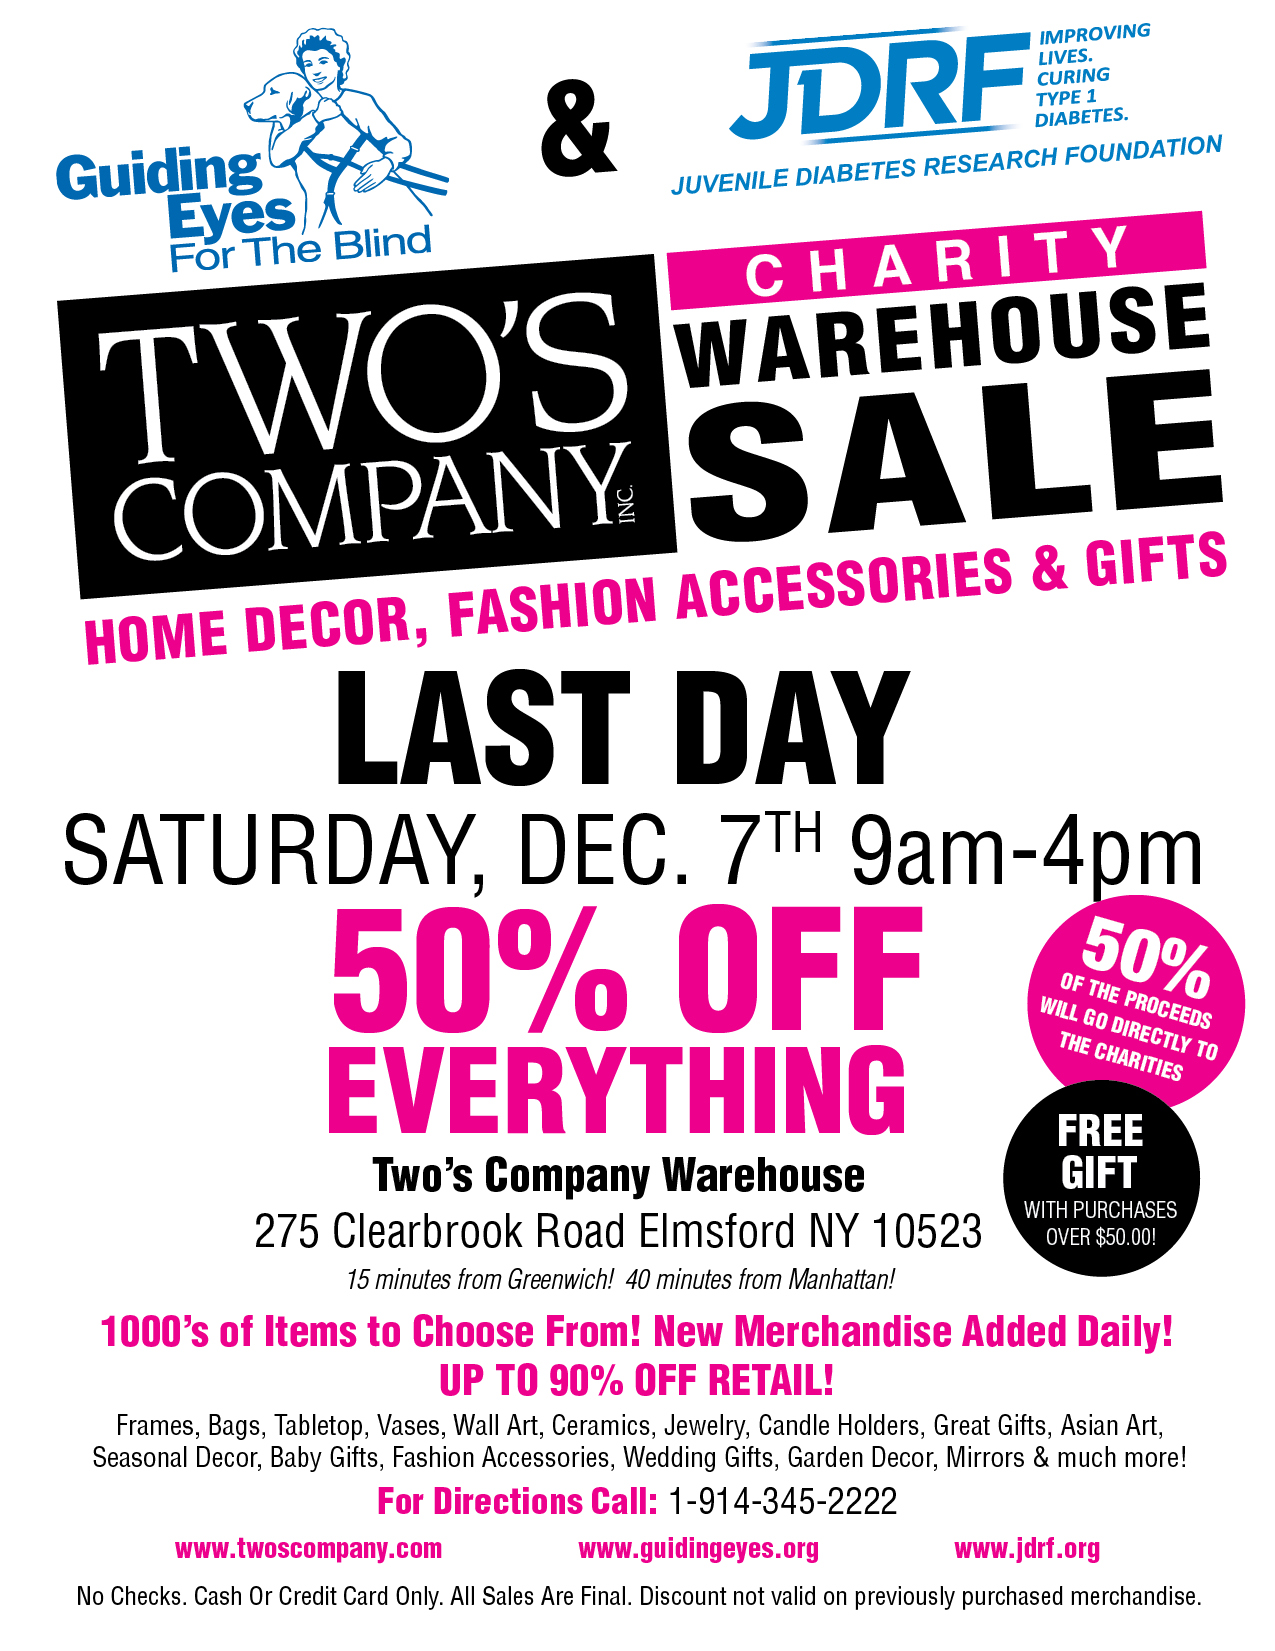 Last Day Sale Large Flyer_2013